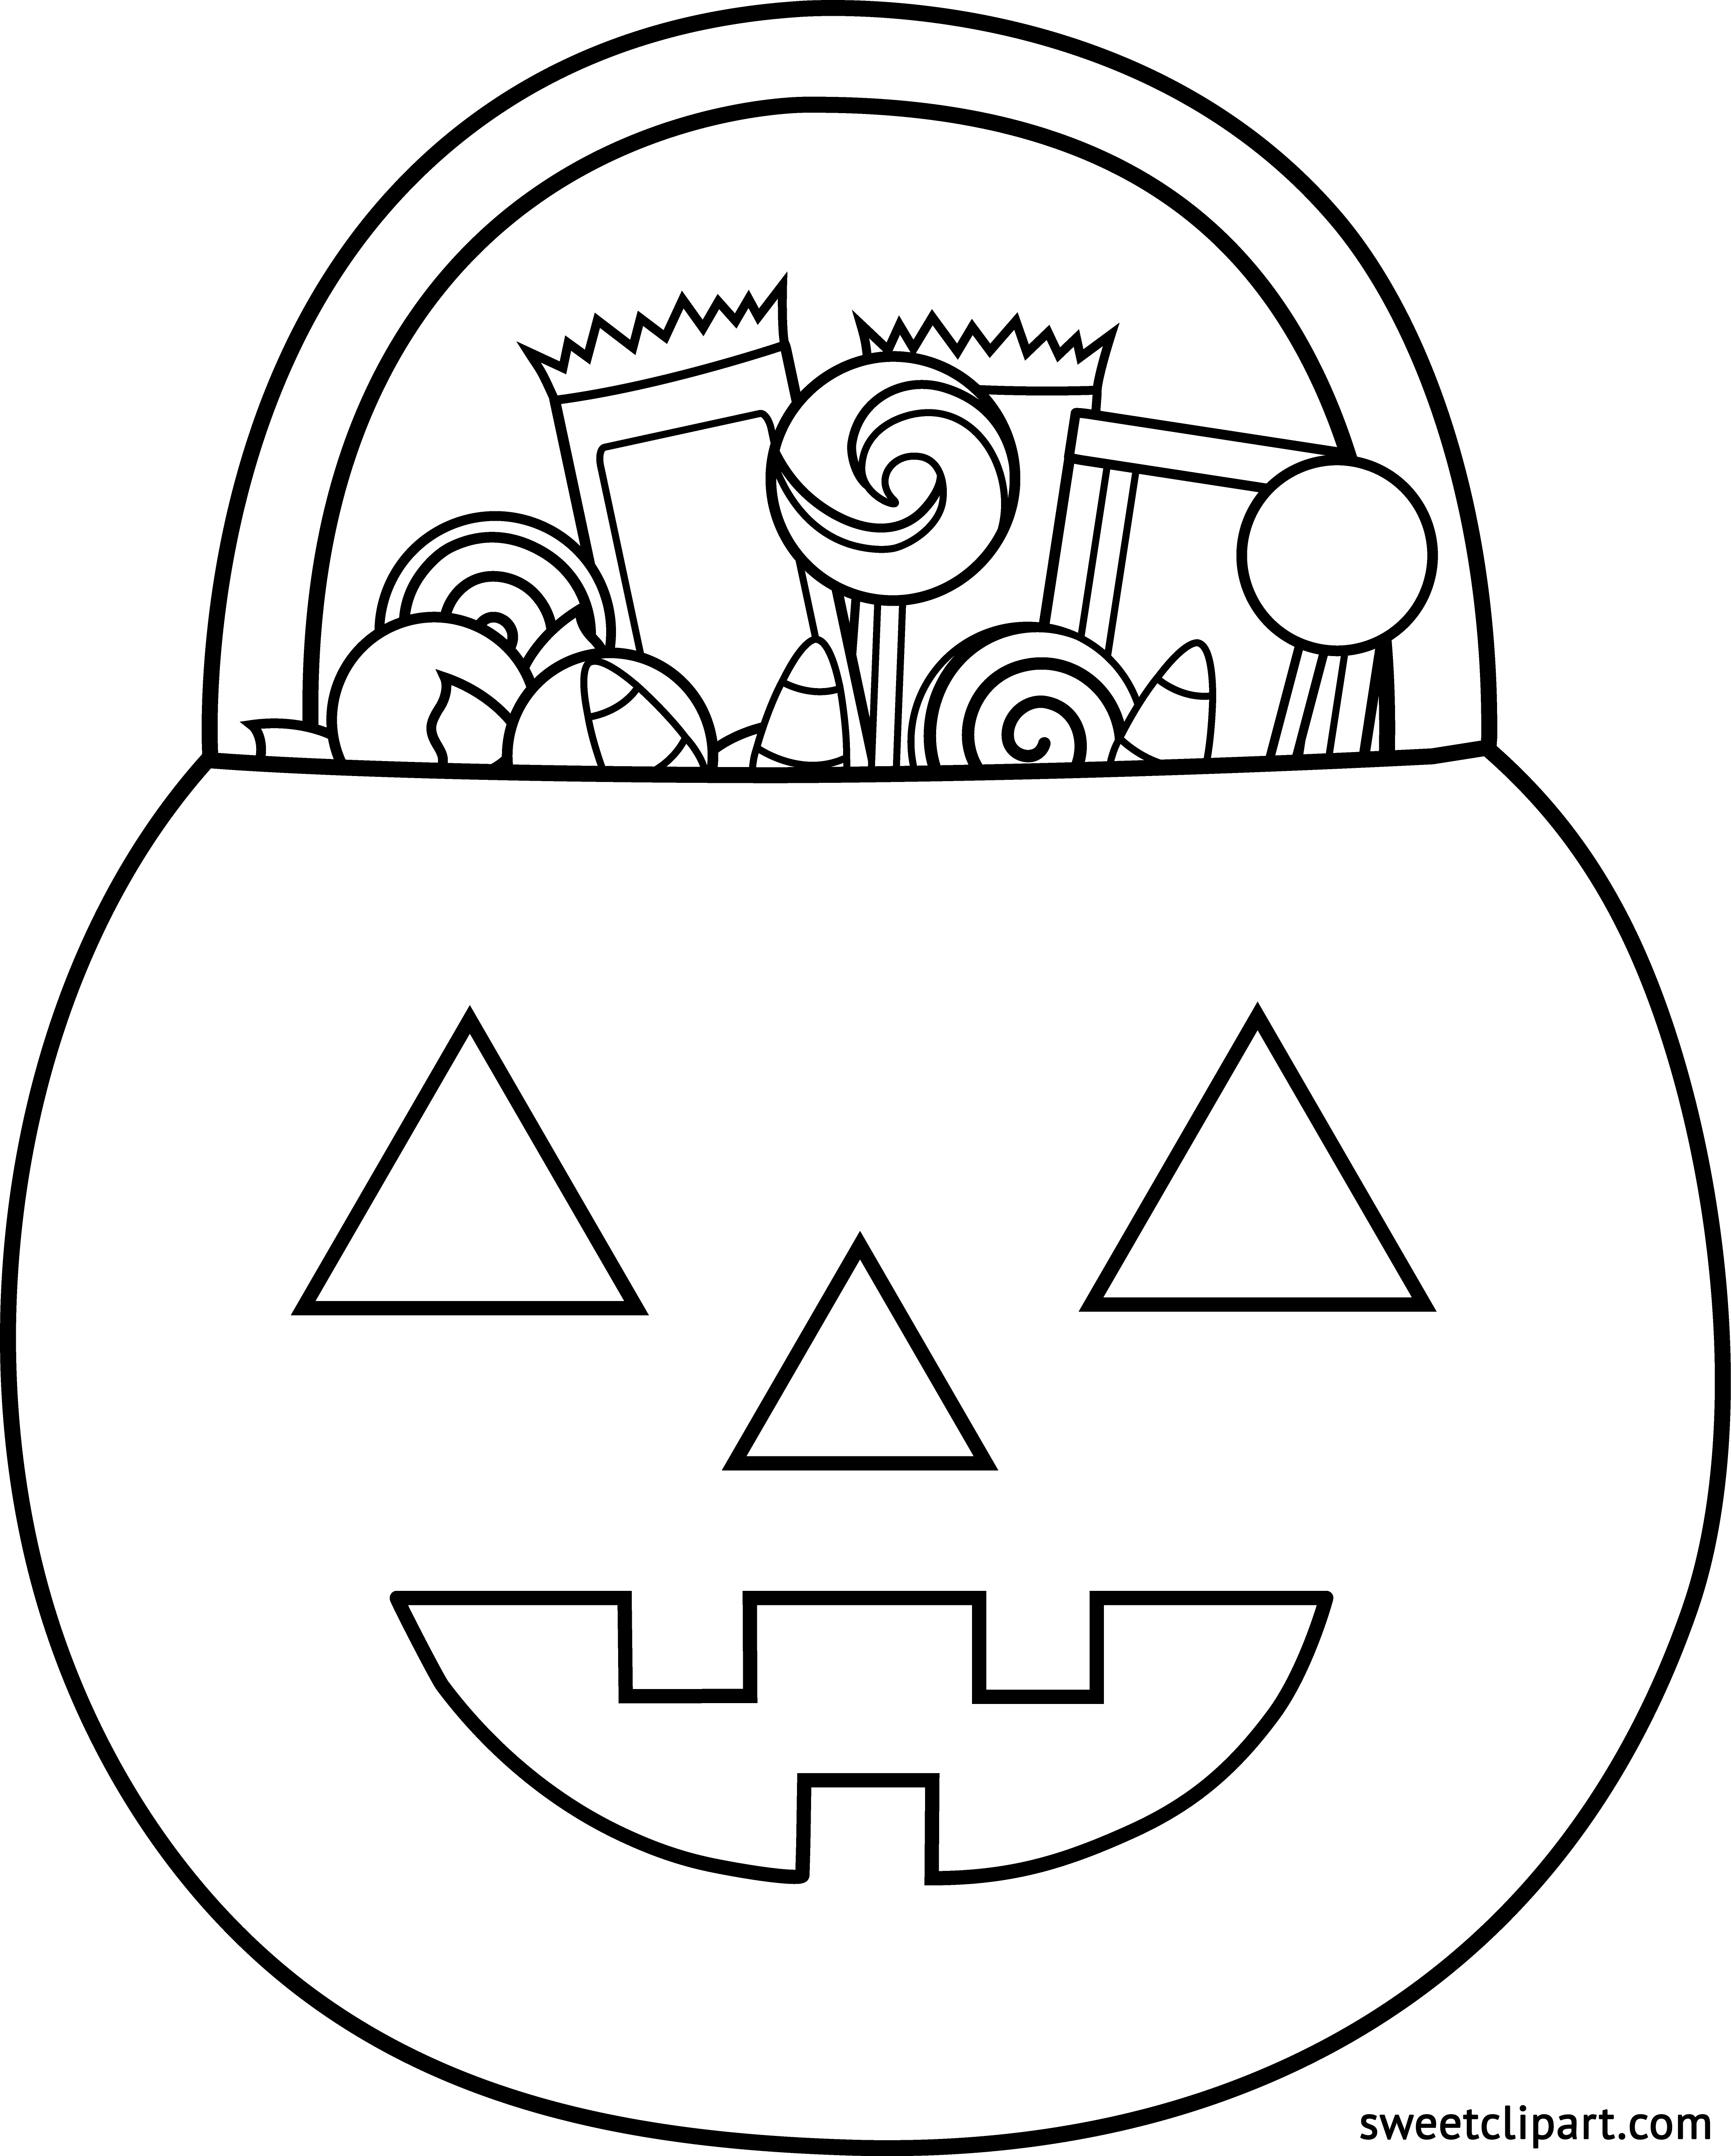 4055x5051 Halloween Pumpkin Candy Coloring Page